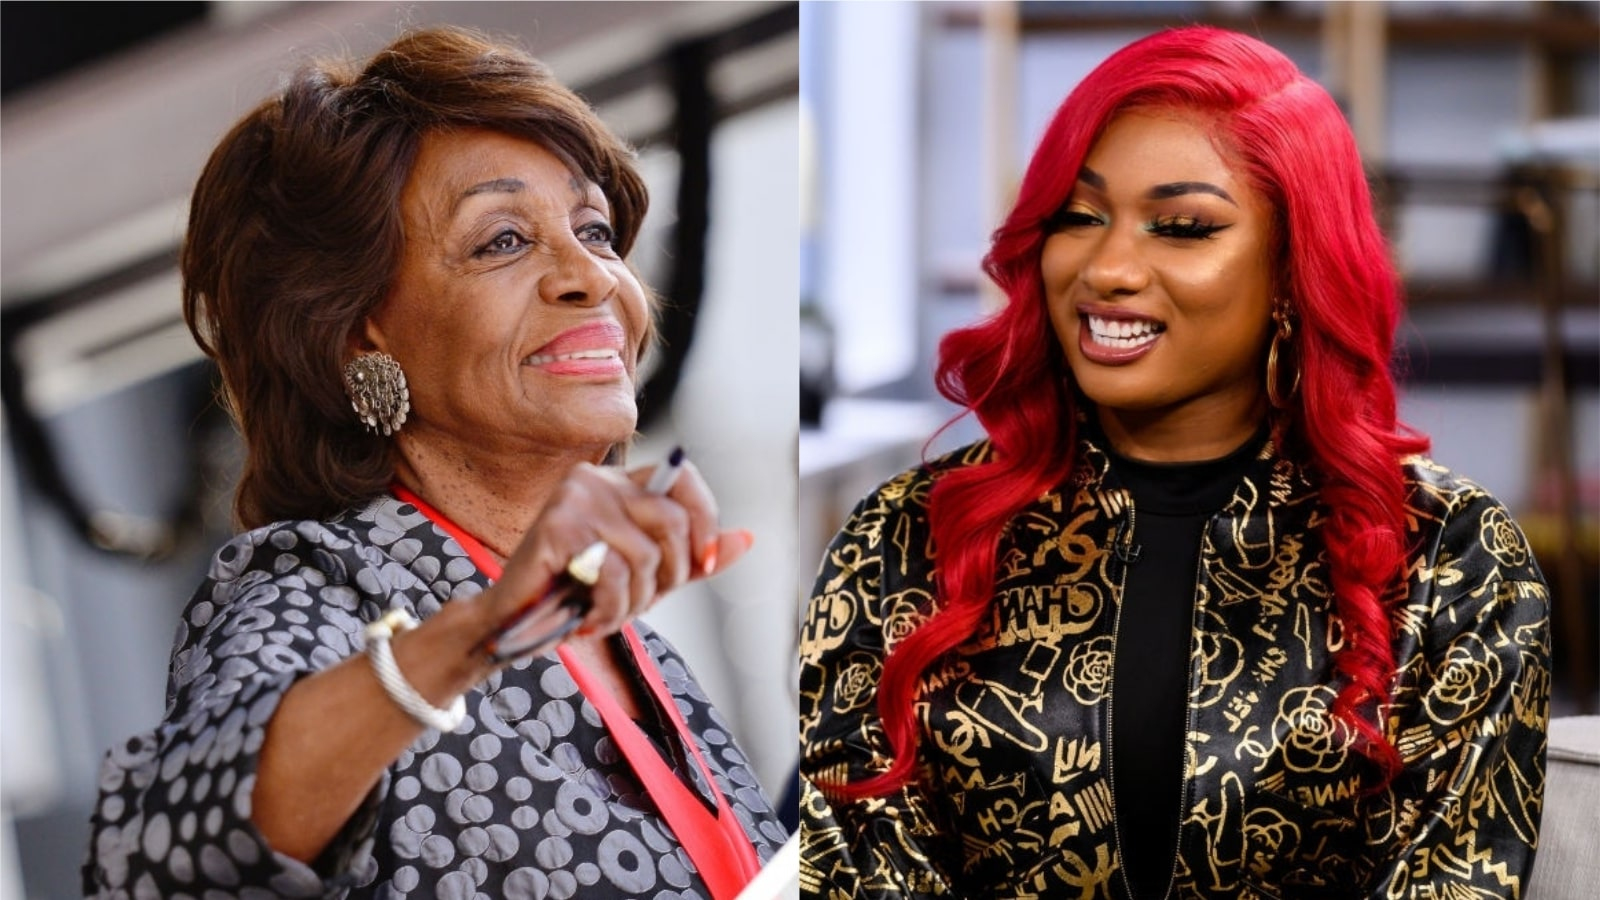 Maxine Waters Sent Megan Thee Stallion A Letter Thanking Her For Standing Up For Black Women: 'I Have Your Back, Too'